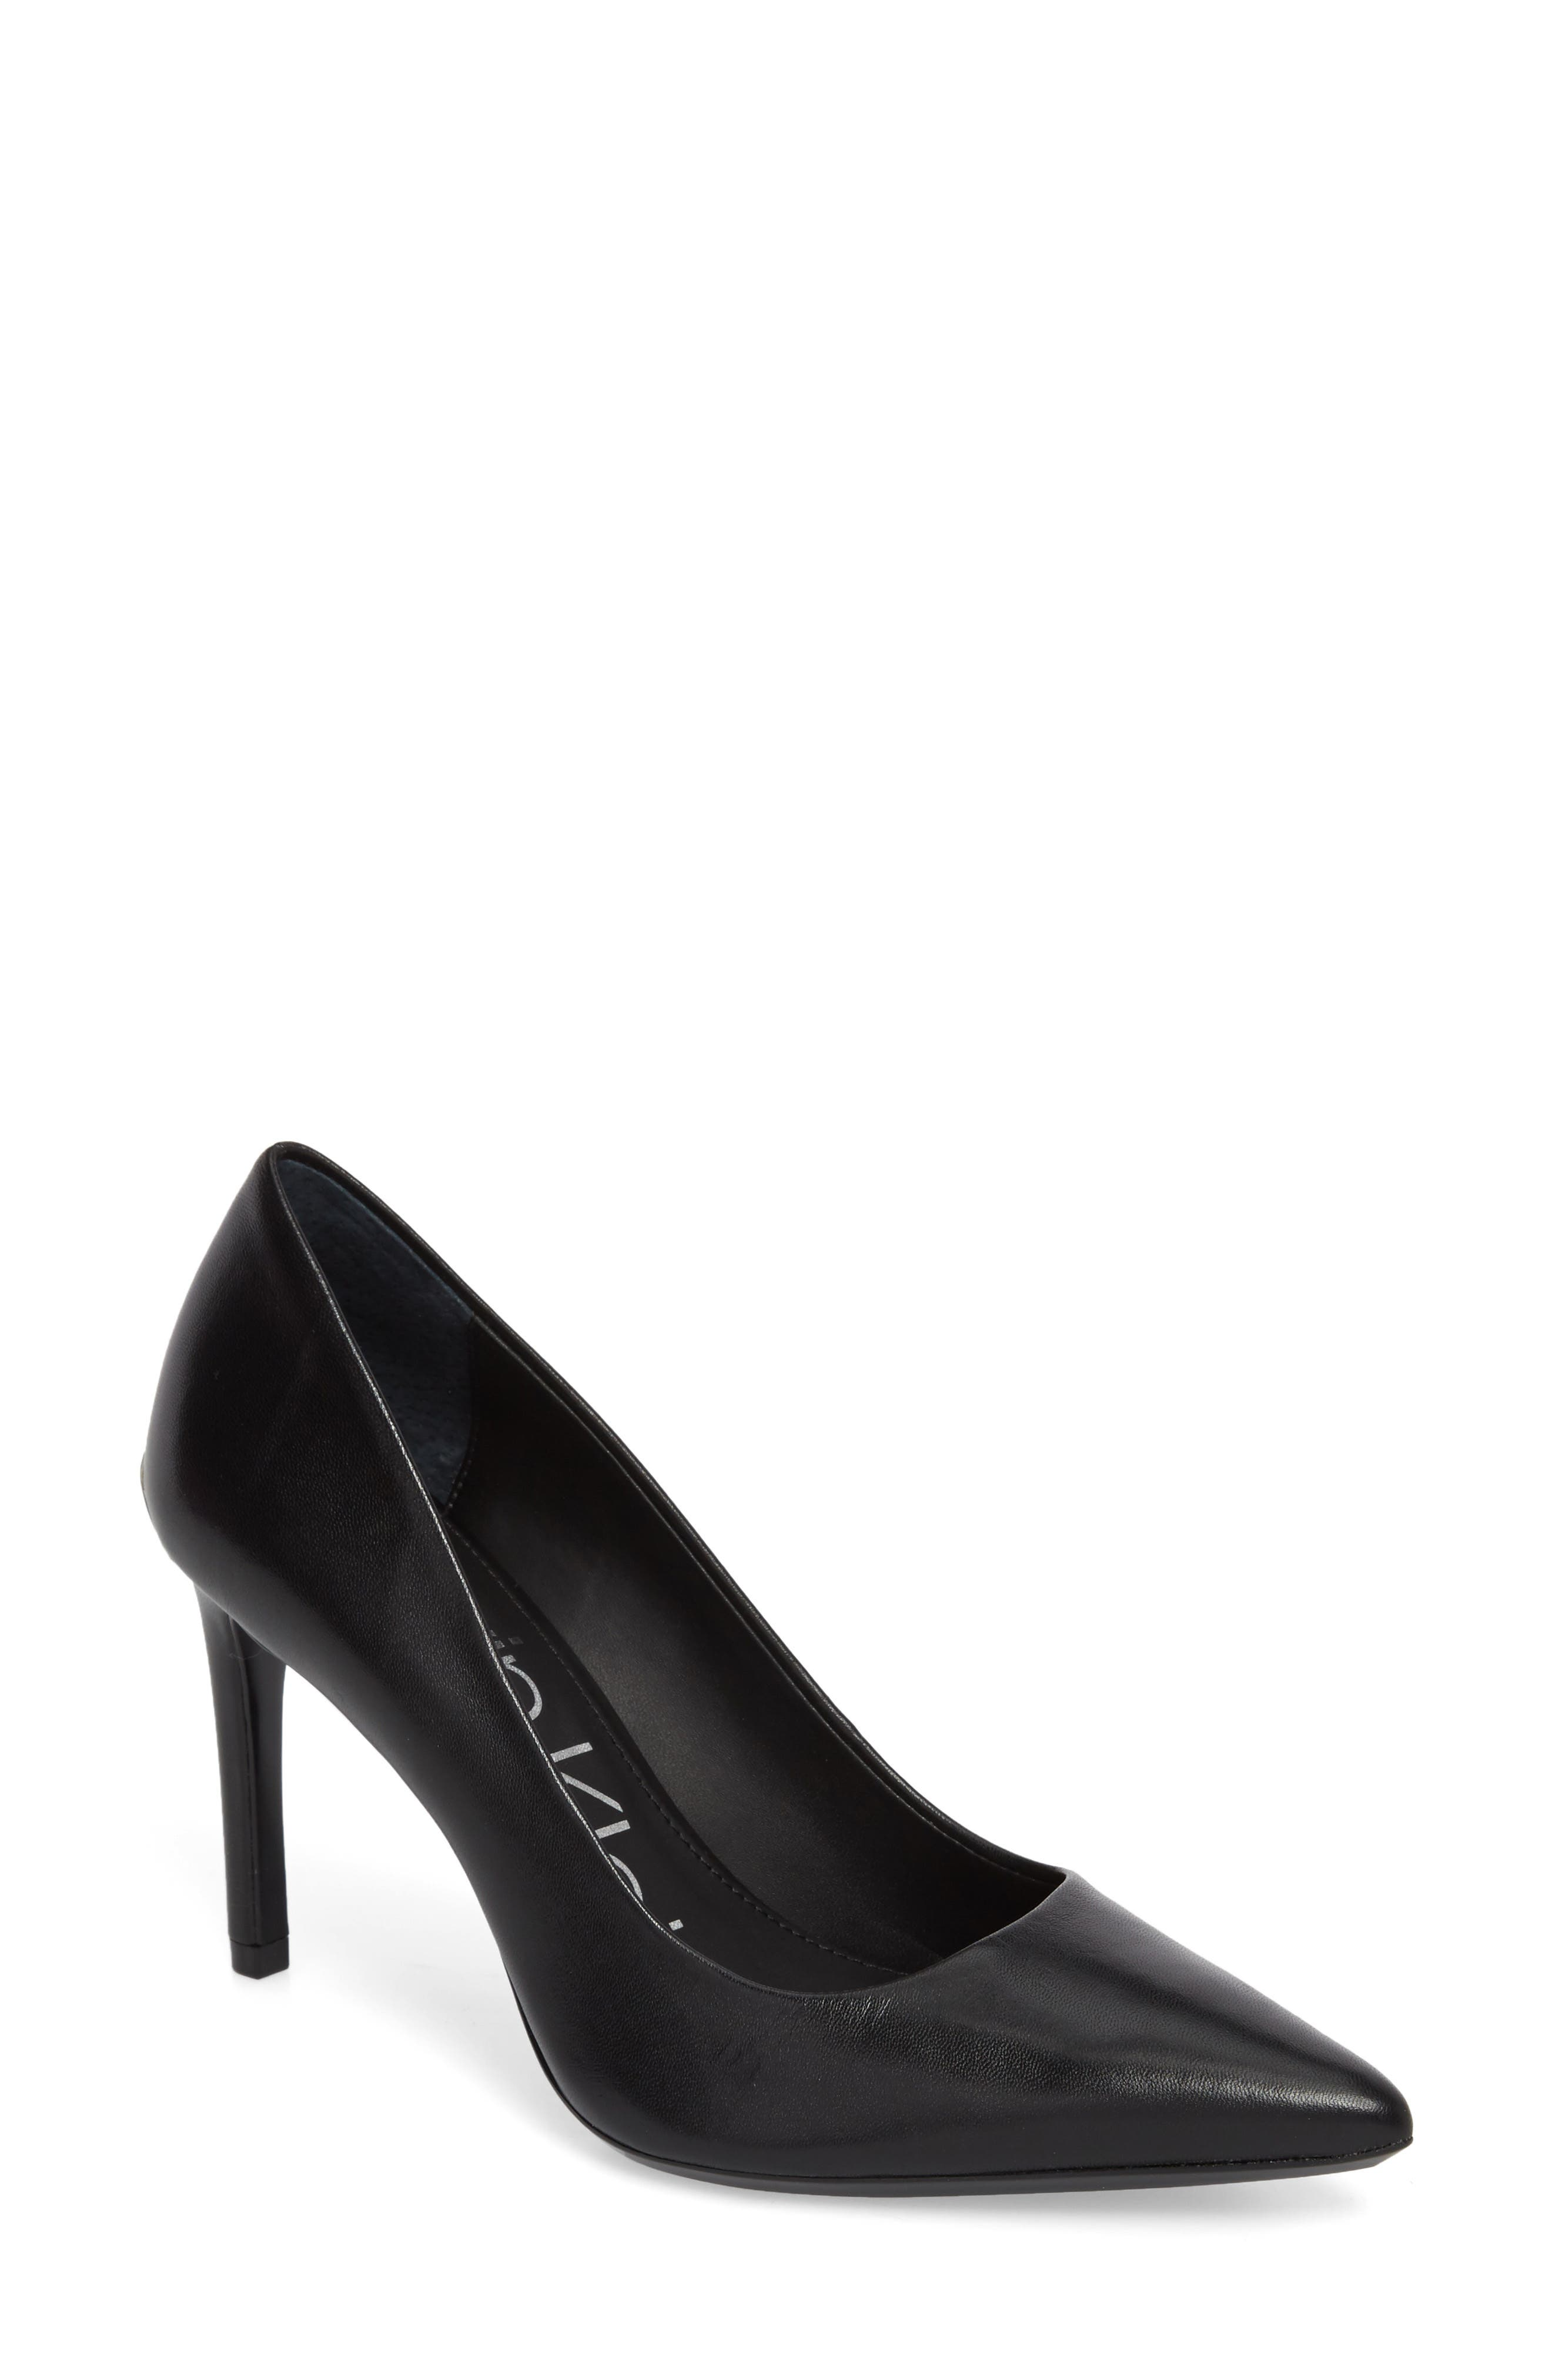 CALVIN KLEIN Ronna Pointy Toe Pump, Main, color, BLACK LEATHER